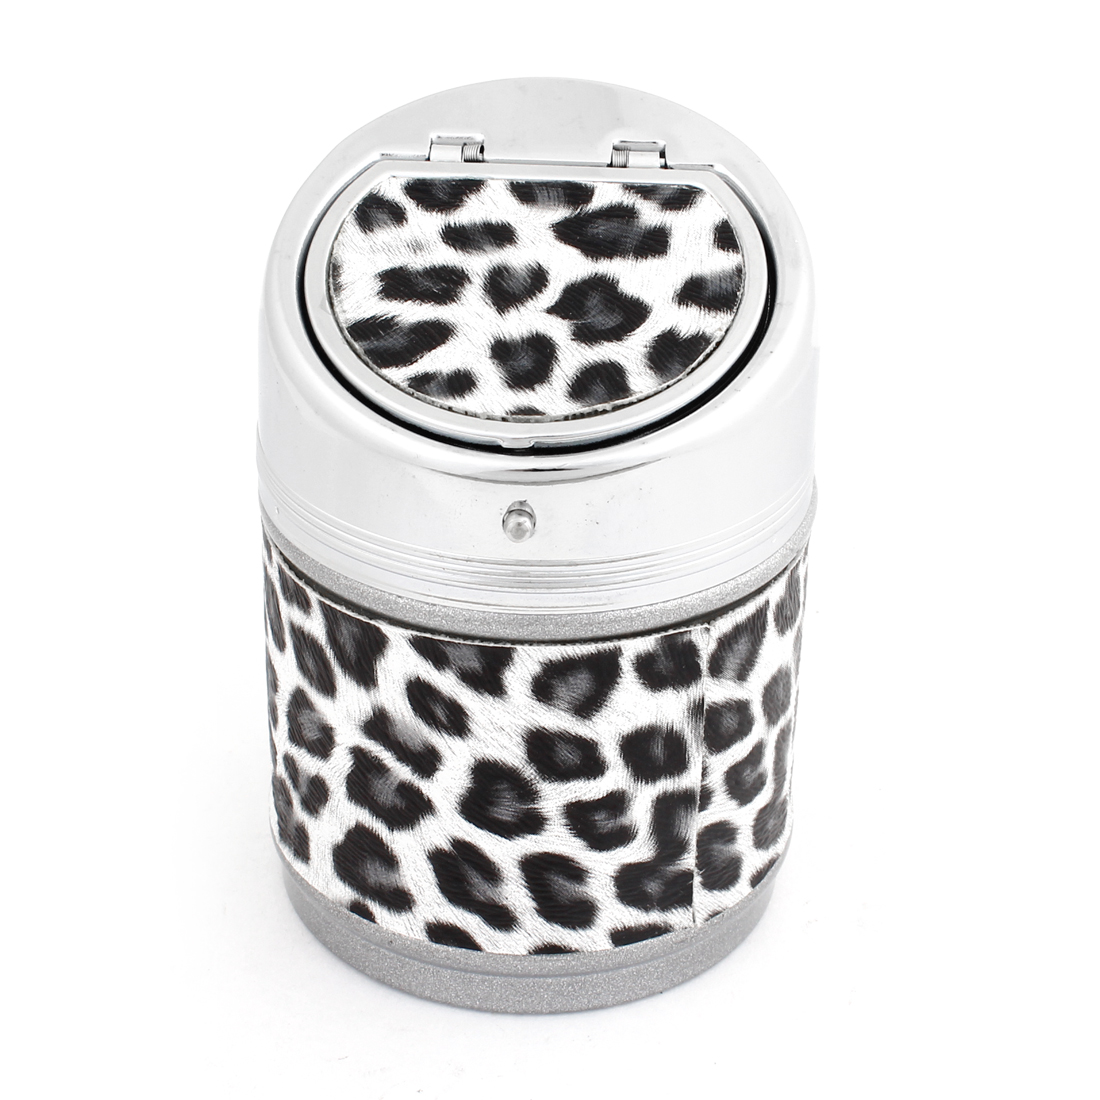 Auto Car Metal Cylinder Shaped Ashtray Ash Tray White Black Leopard Print